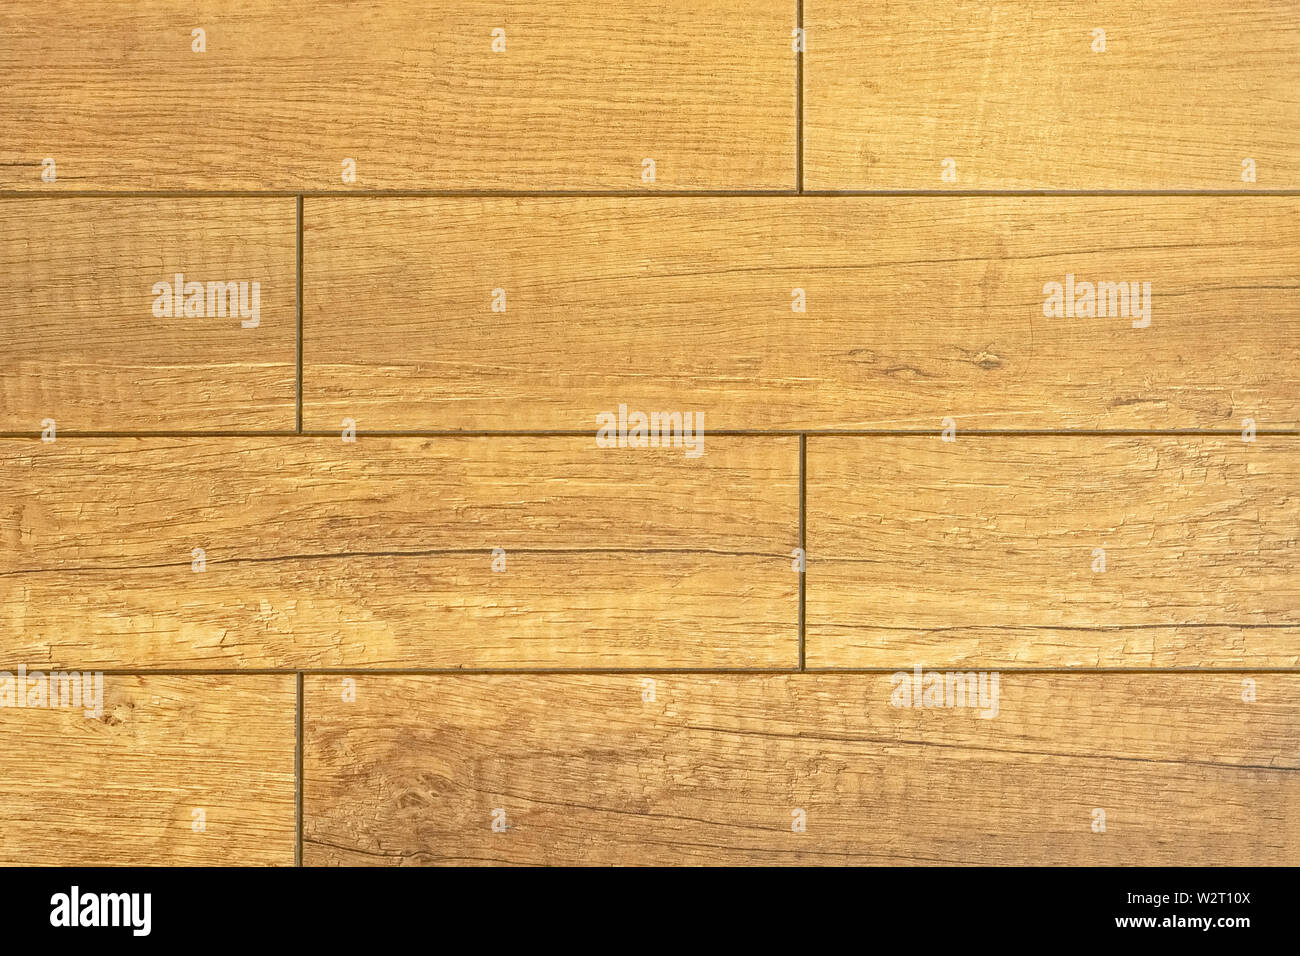 Fragment of a floor laid out with a parquet from wooden plates, for use as a texture and an abstract background. - Stock Image